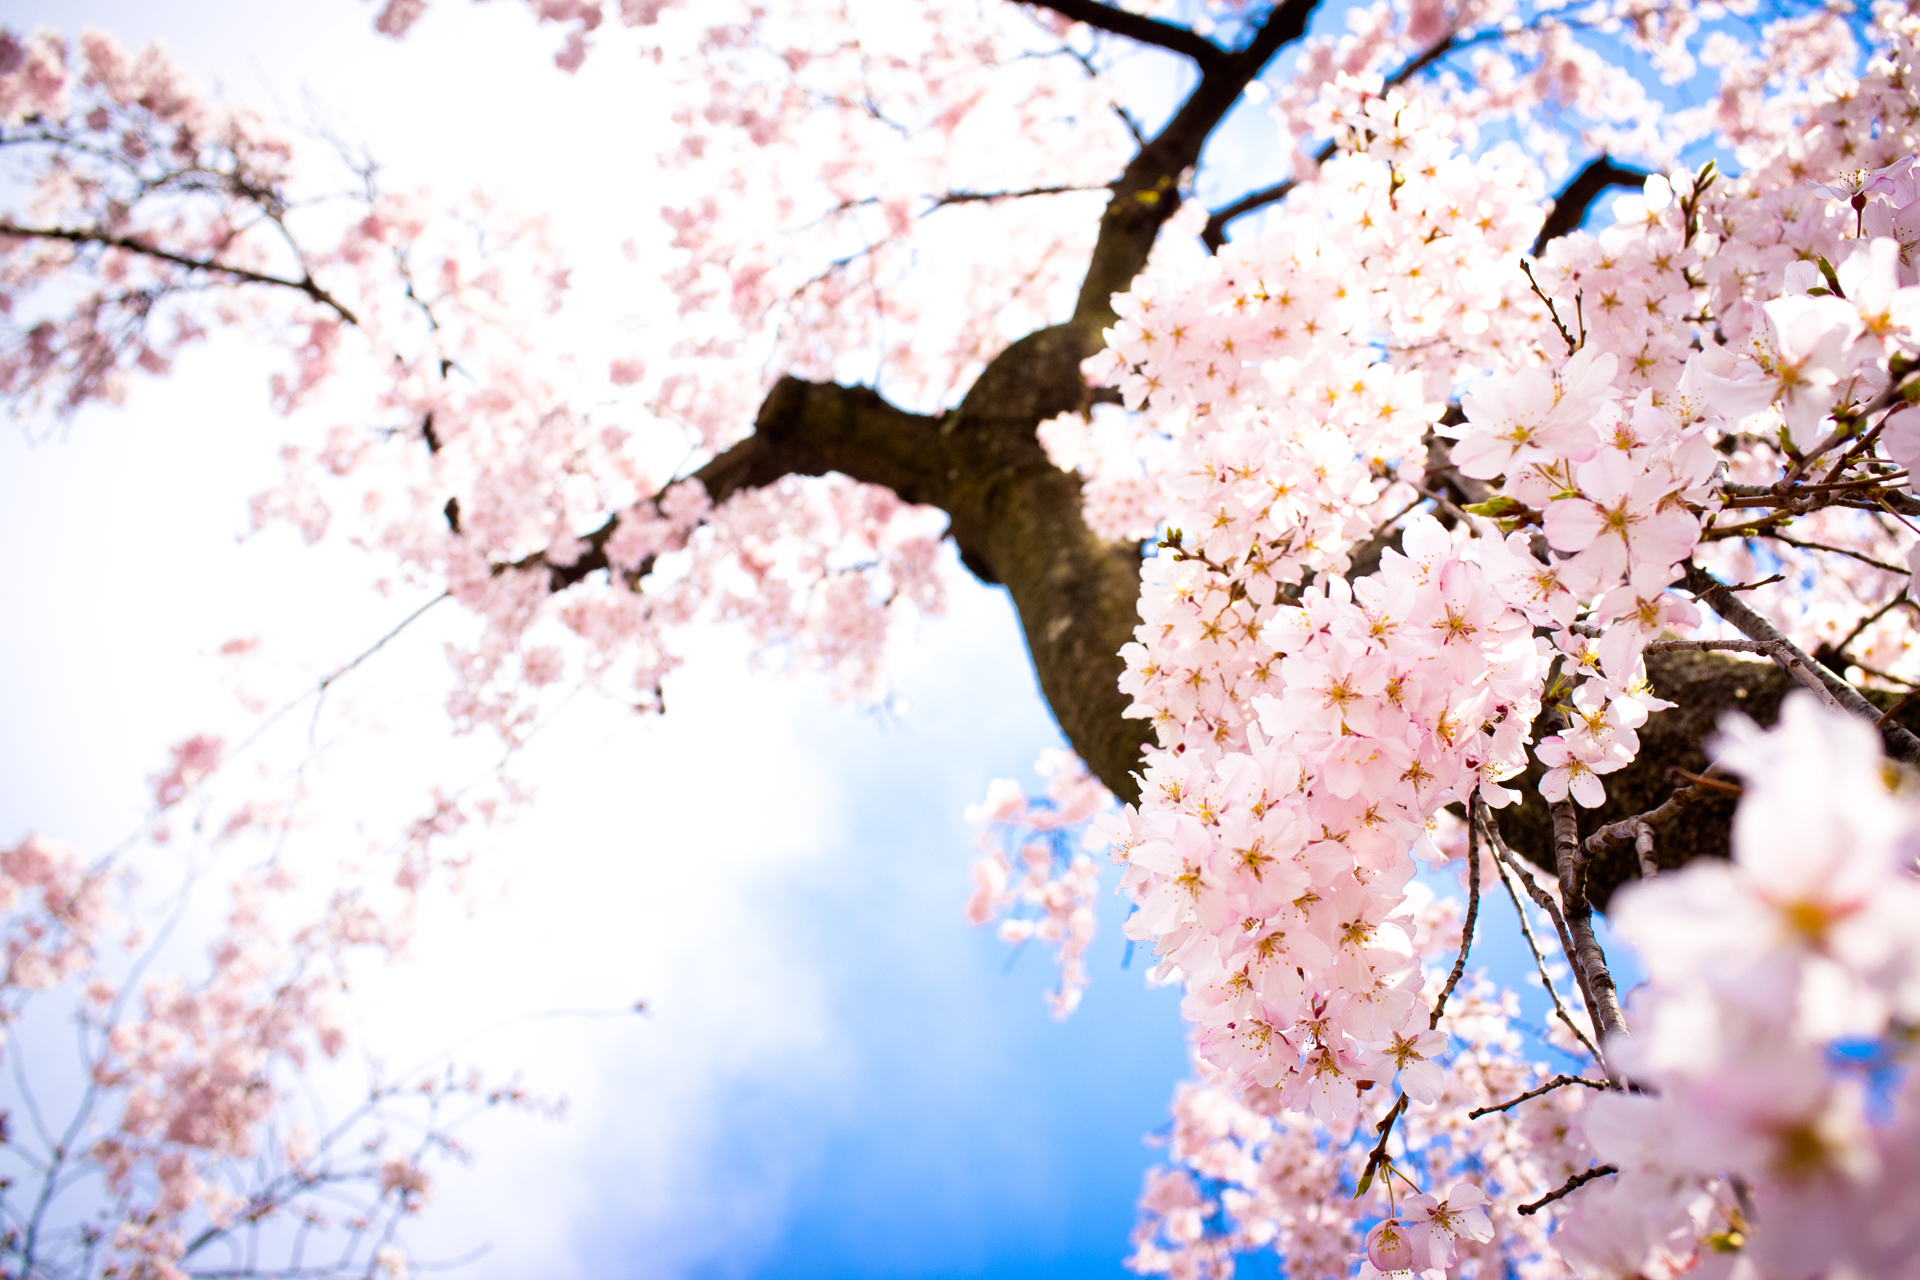 Wallpapers Cherry Blossom Cherry Blossom Images Beautiful Cherry Blossom Hd Wallpaper And